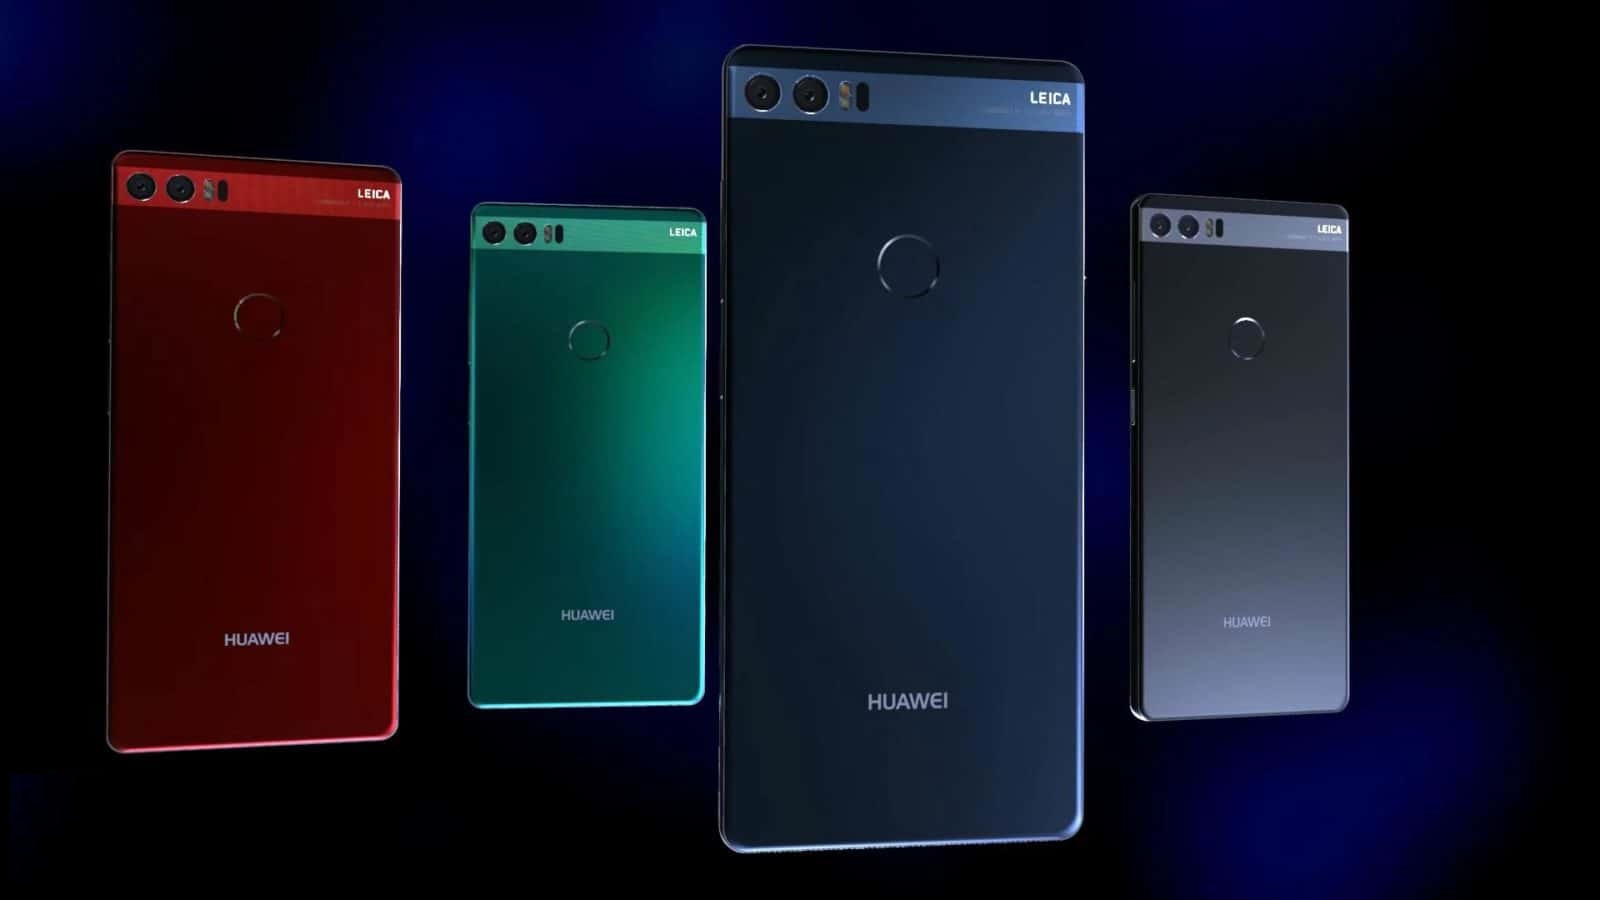 Huawei P11 skeleton looks which likely to be released February 2018 and most like Samsung Galaxy ...